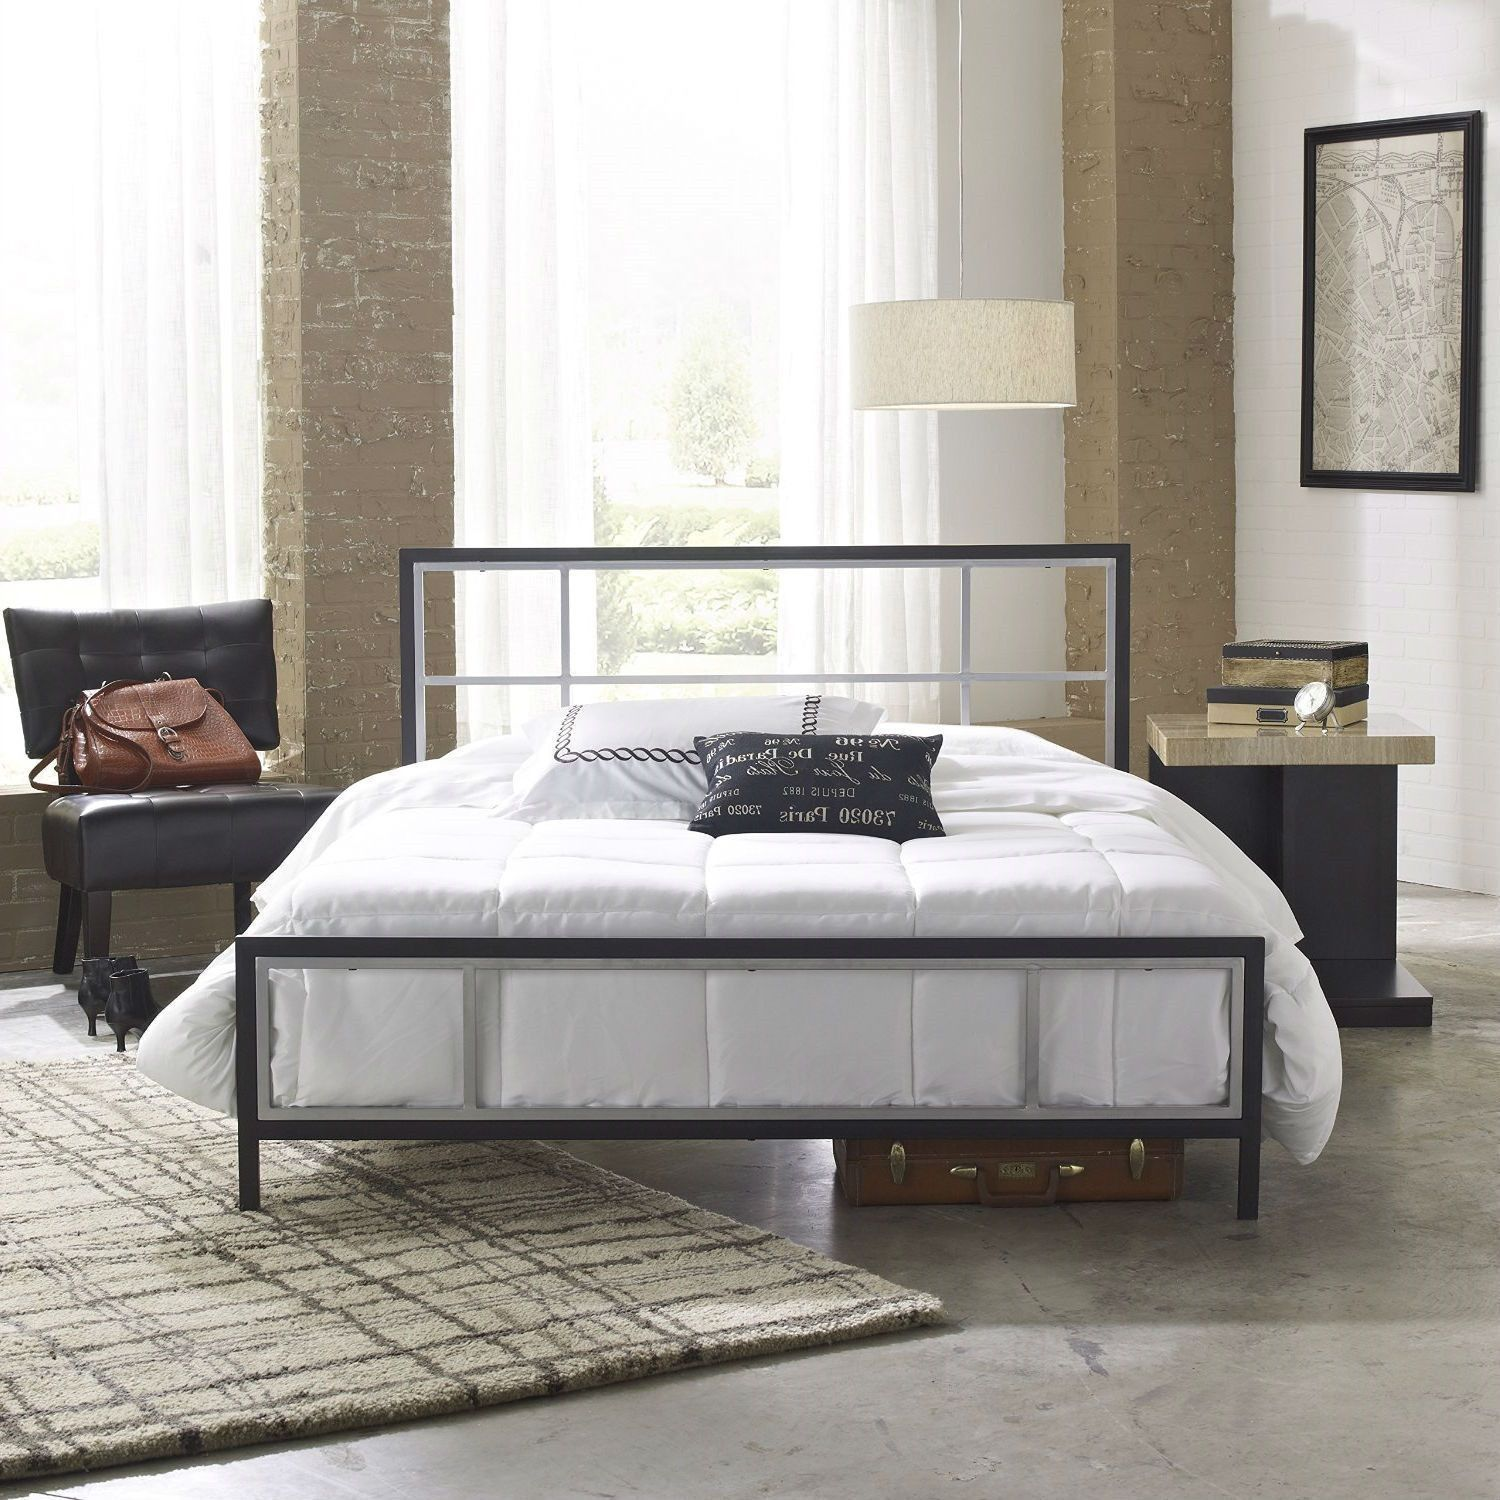 Queen size modern platform metal bed frame with headboard footboard and wooden slats